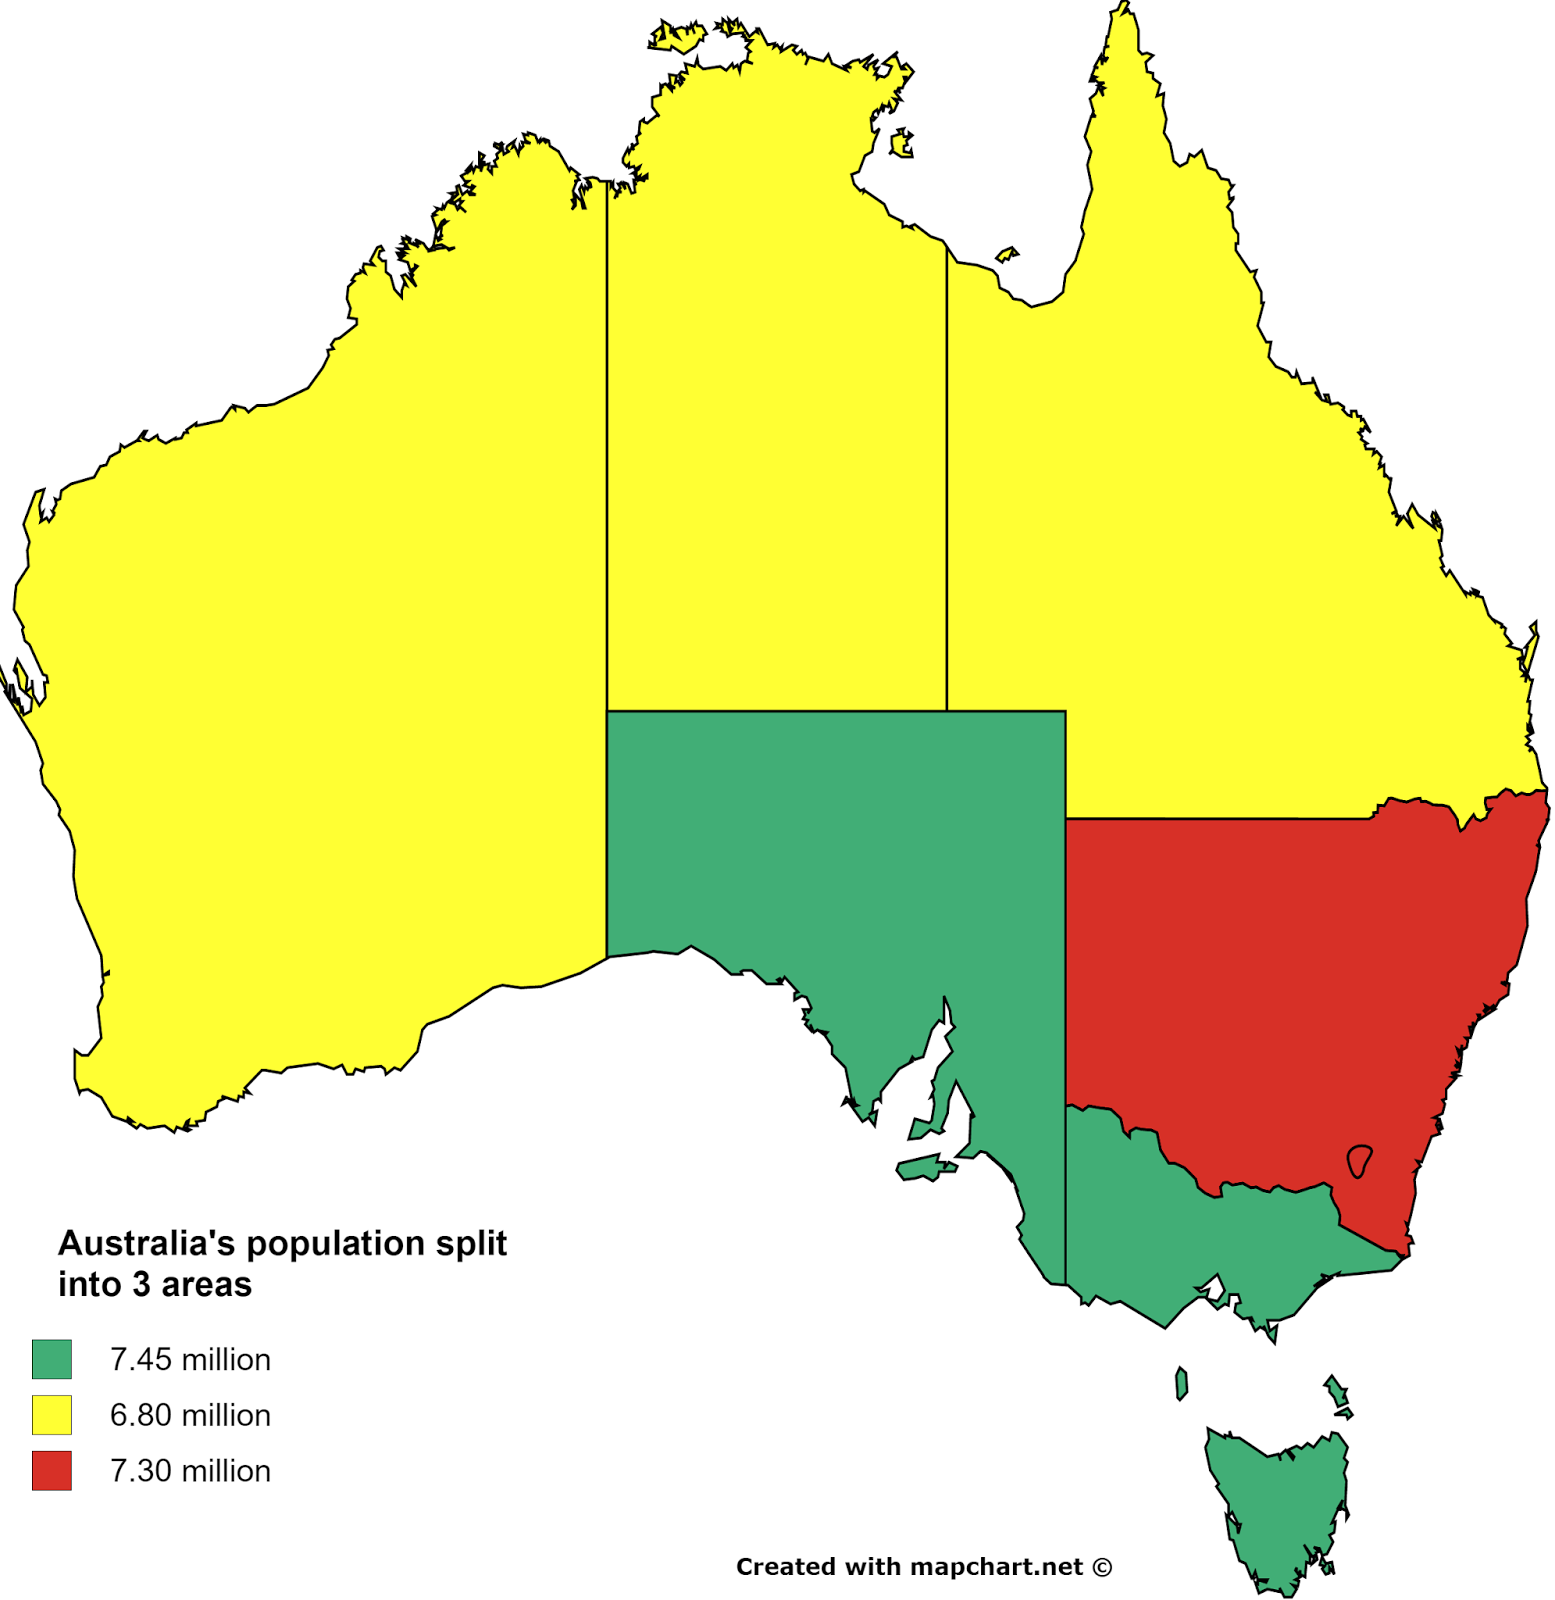 Australia's population split into 3 areas